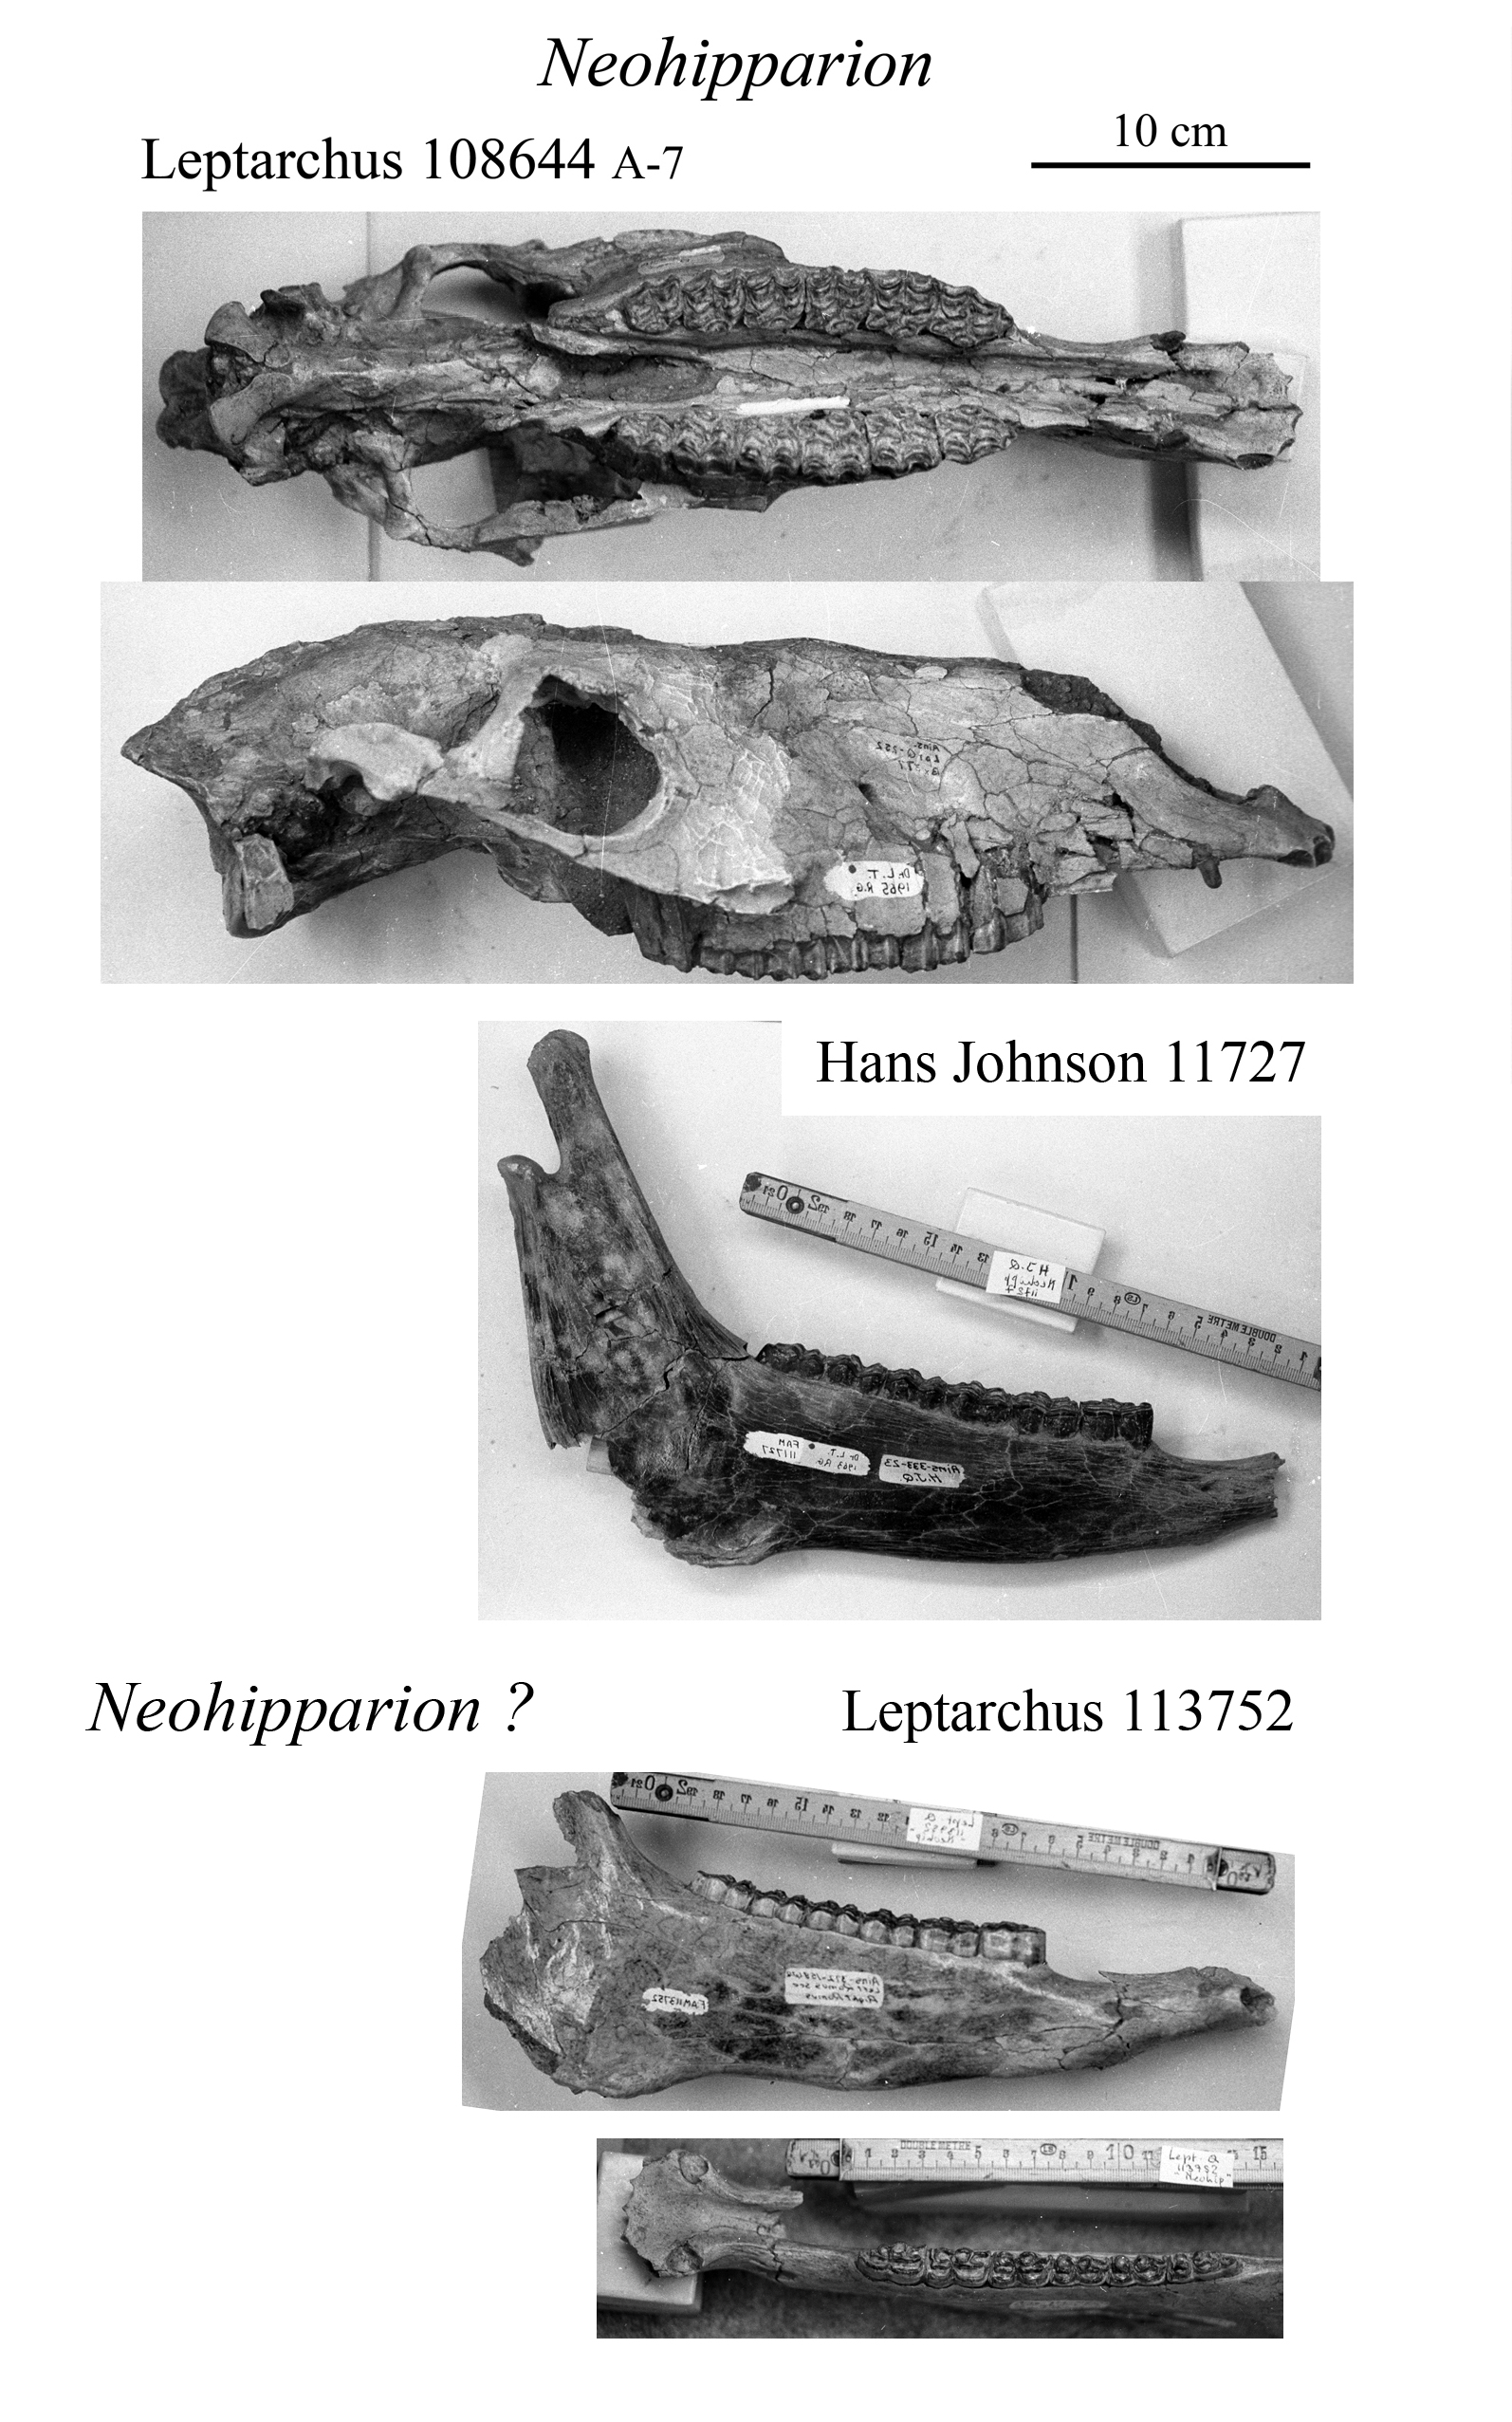 Neohipparion skull and mandibles